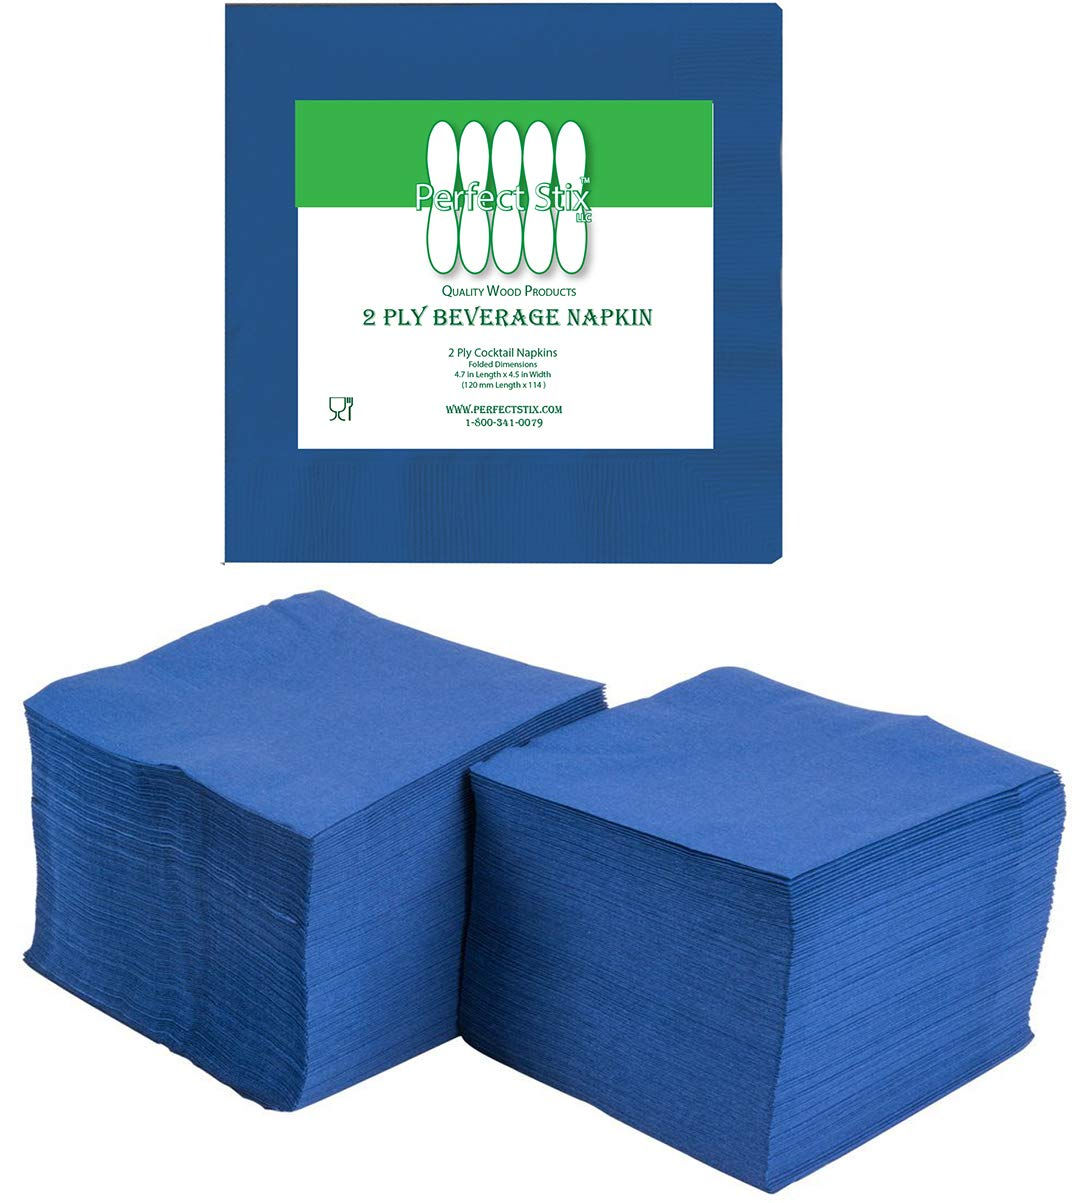 """Perfectware 2 Ply Navy Blue-200 Navy Blue Beverage Napkin Package of 200ct- 2-Ply, 2.5"""" Height, 5"""" Width, 10"""" Length (Pack of 200)"""